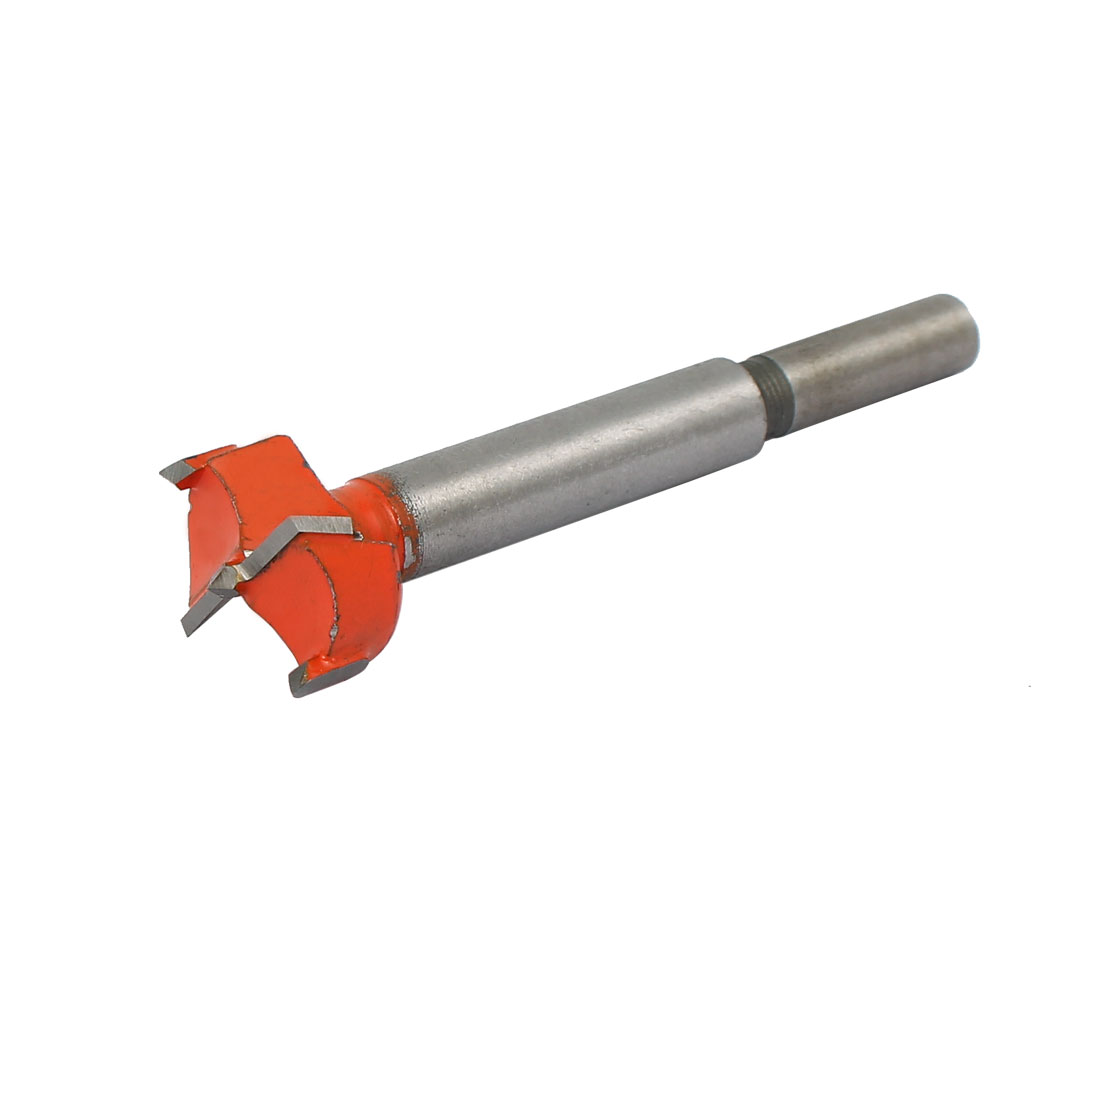 23mm Dia Carbide Tip Wood Drilling Cutting Hinge Boring Bit Drill Tool Orange